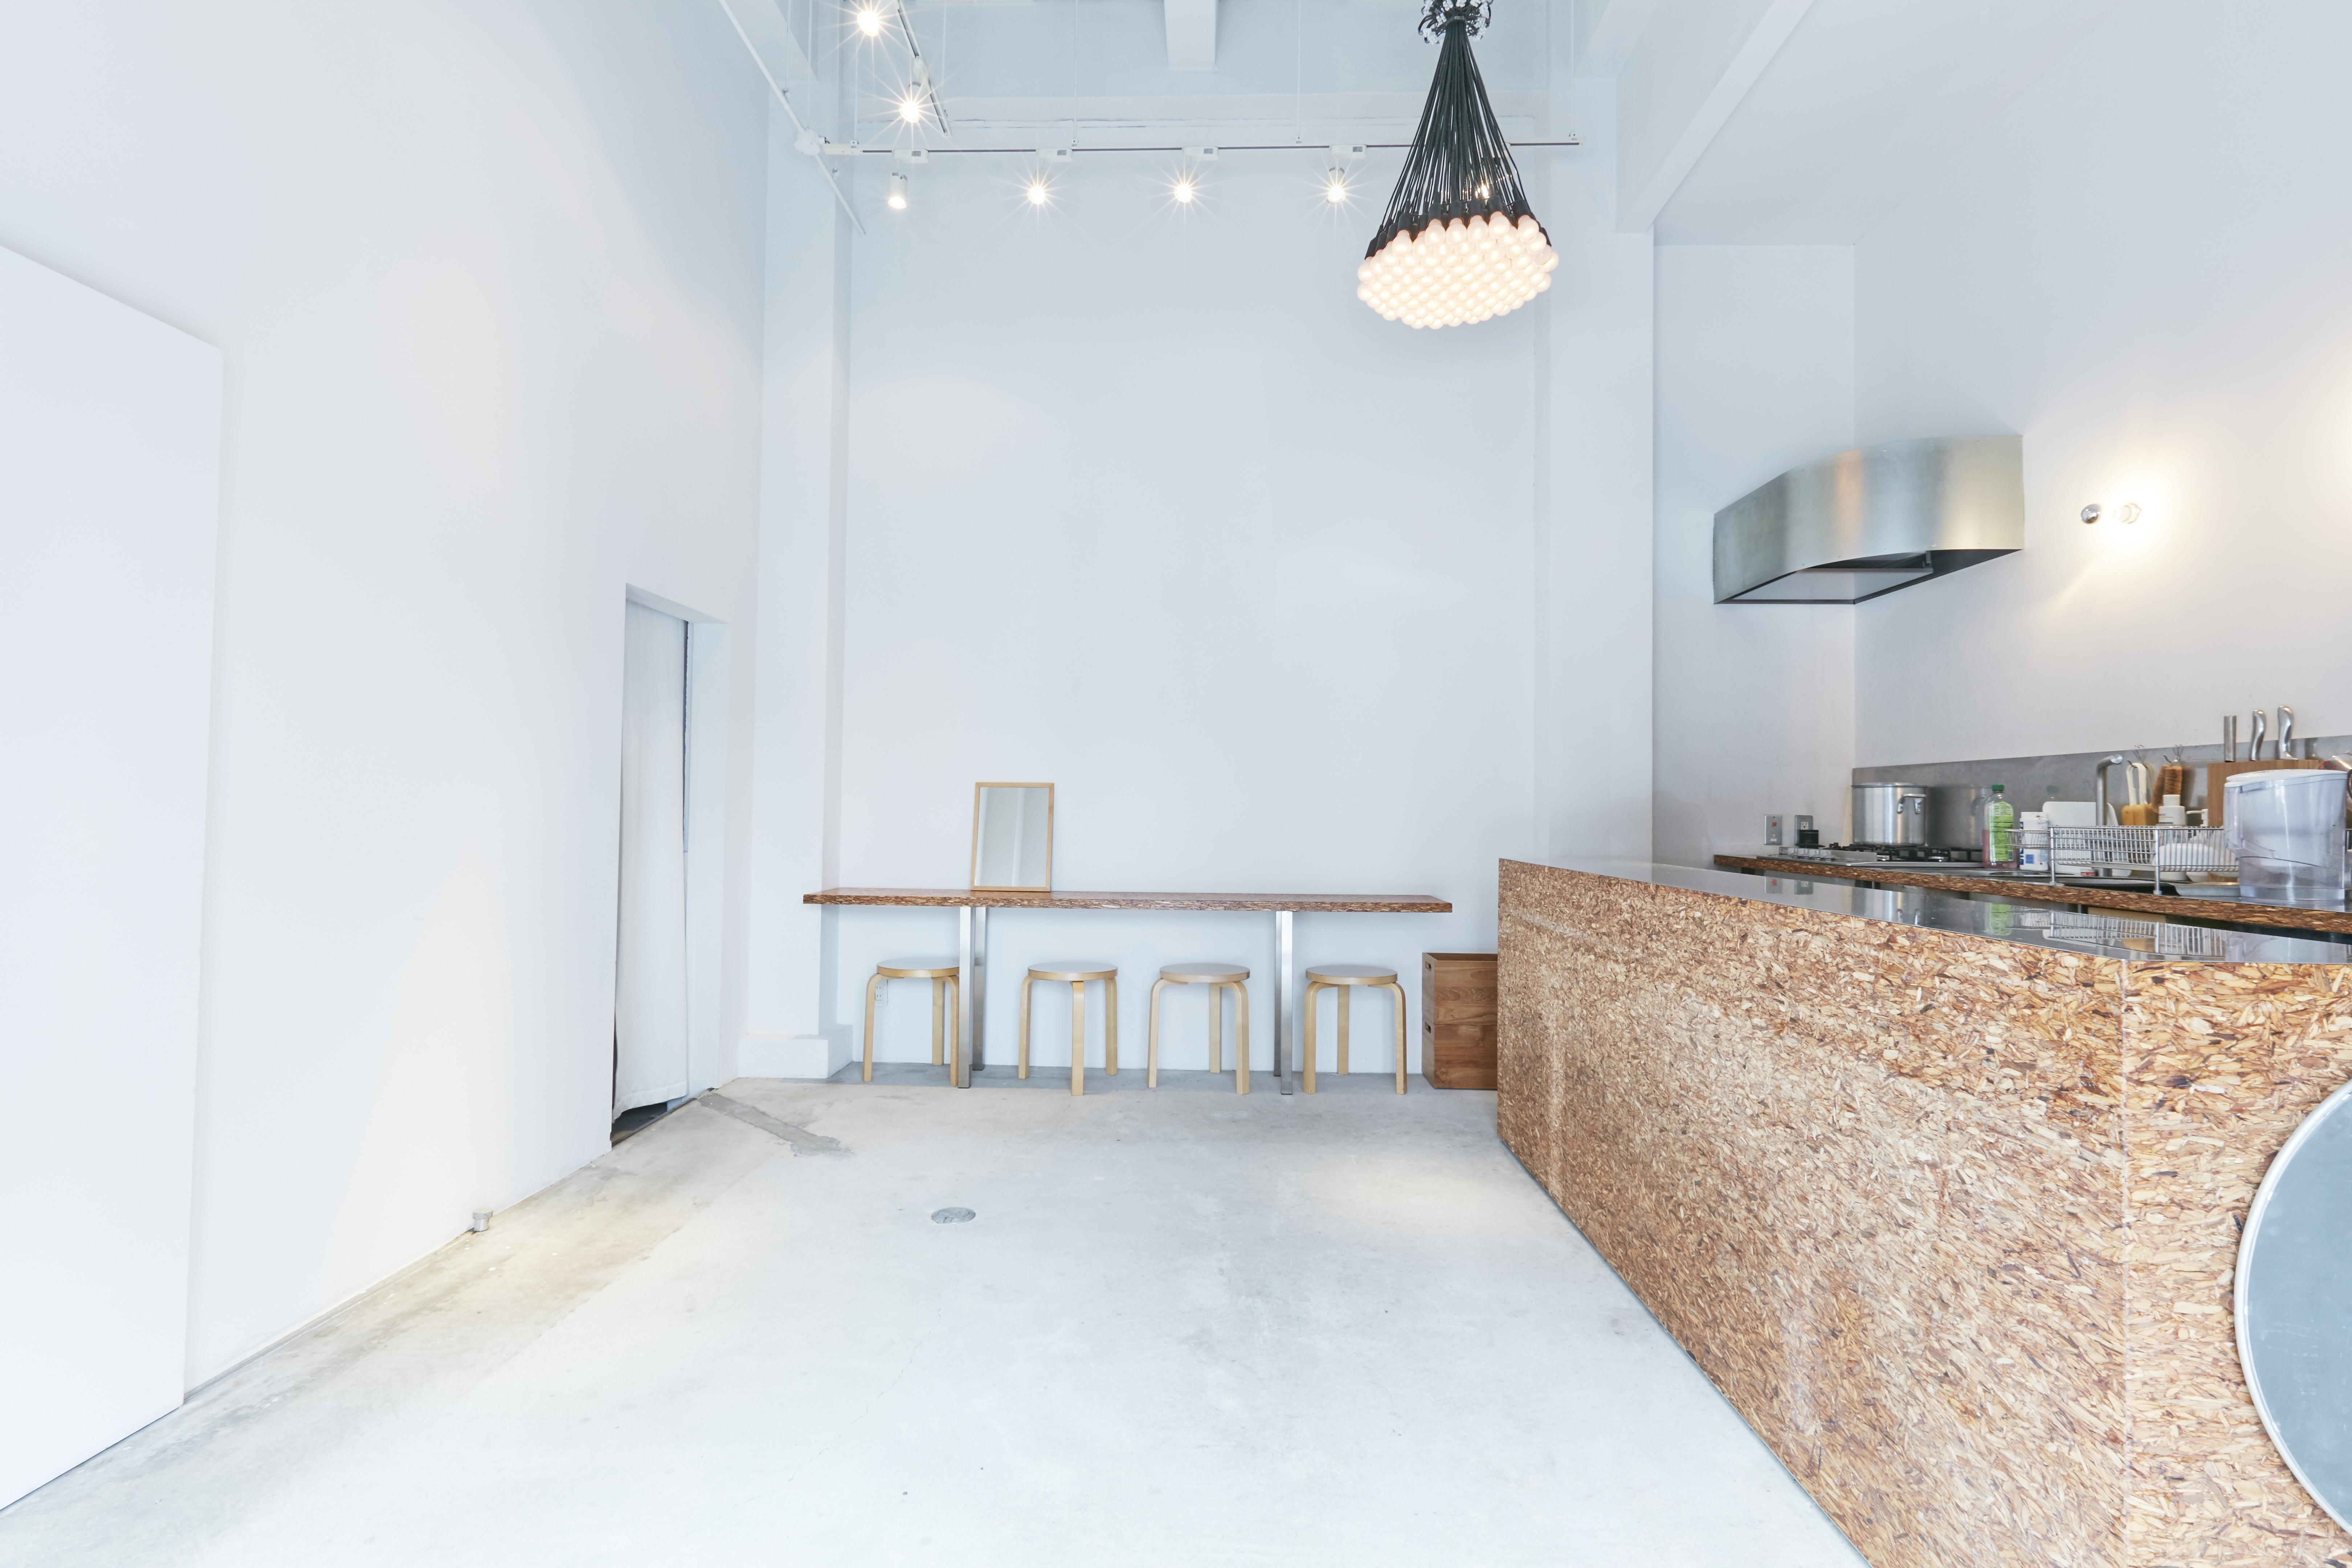 CAFEdeuxpoissons -Rental Space-の室内の写真